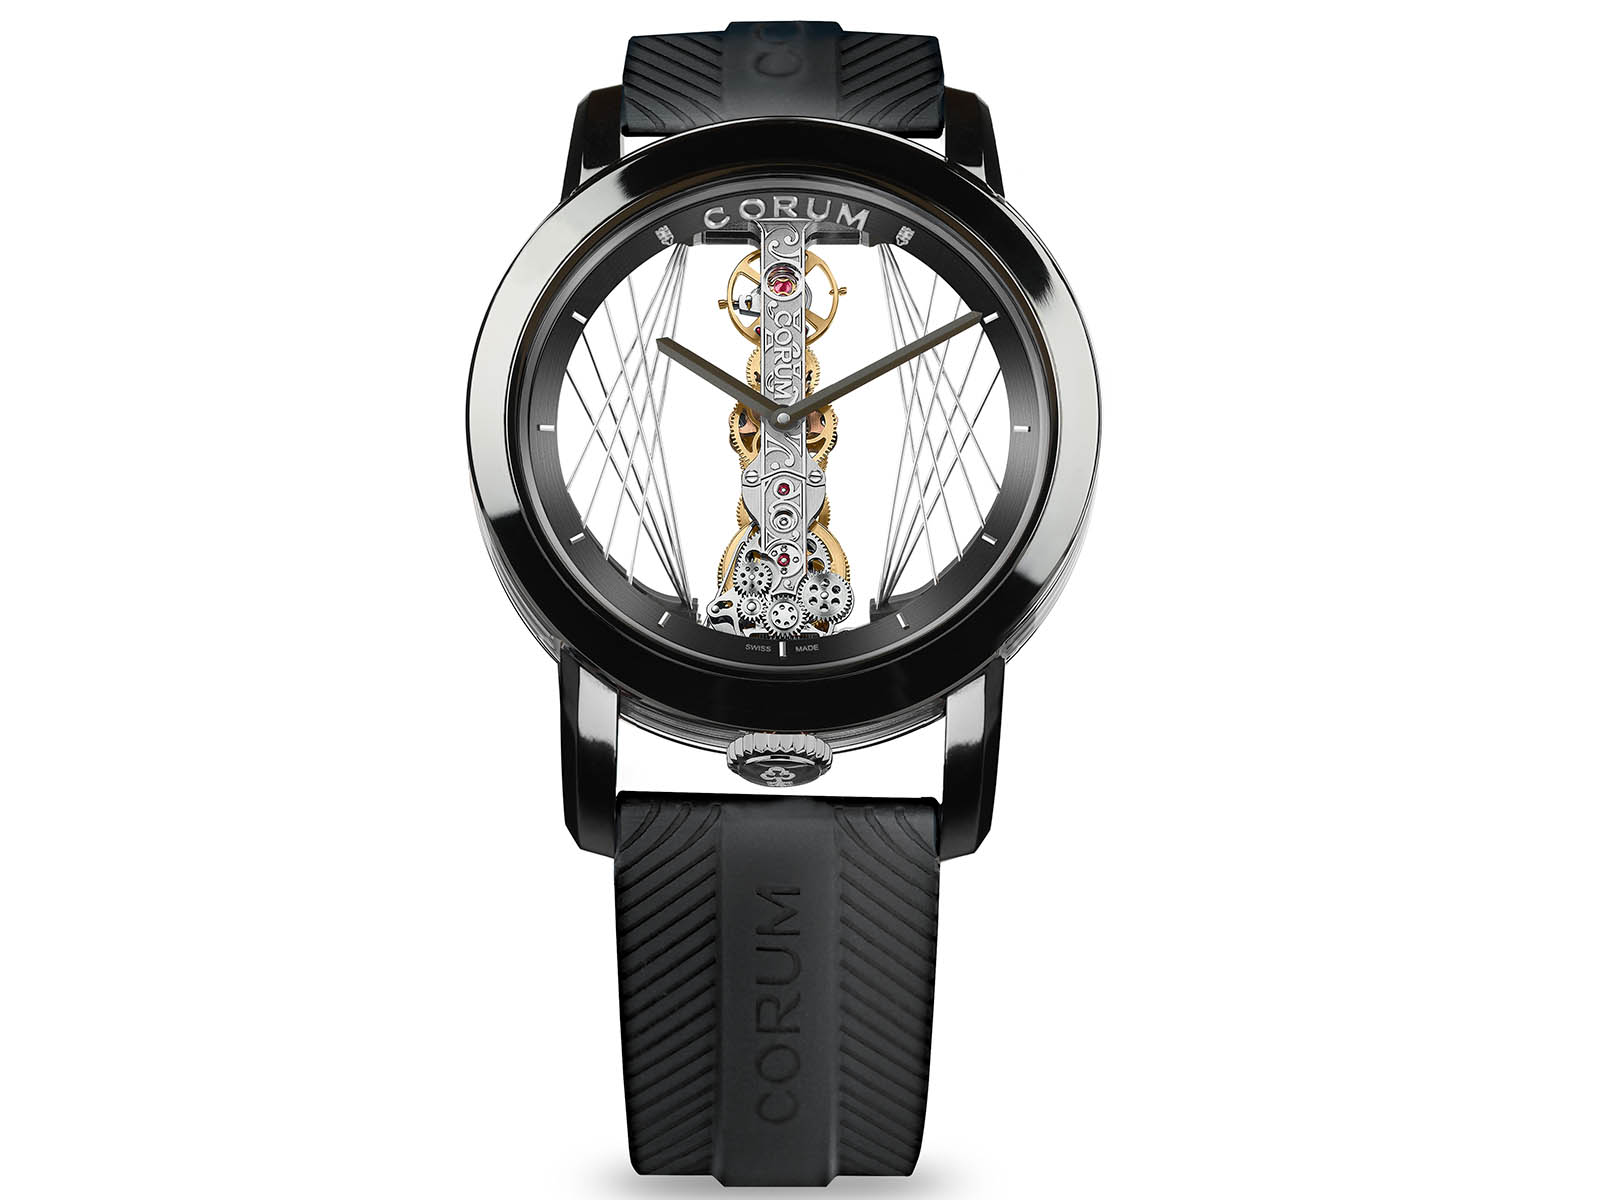 b113-03952-corum-golden-bridge-round-43-art-deco-6.jpg